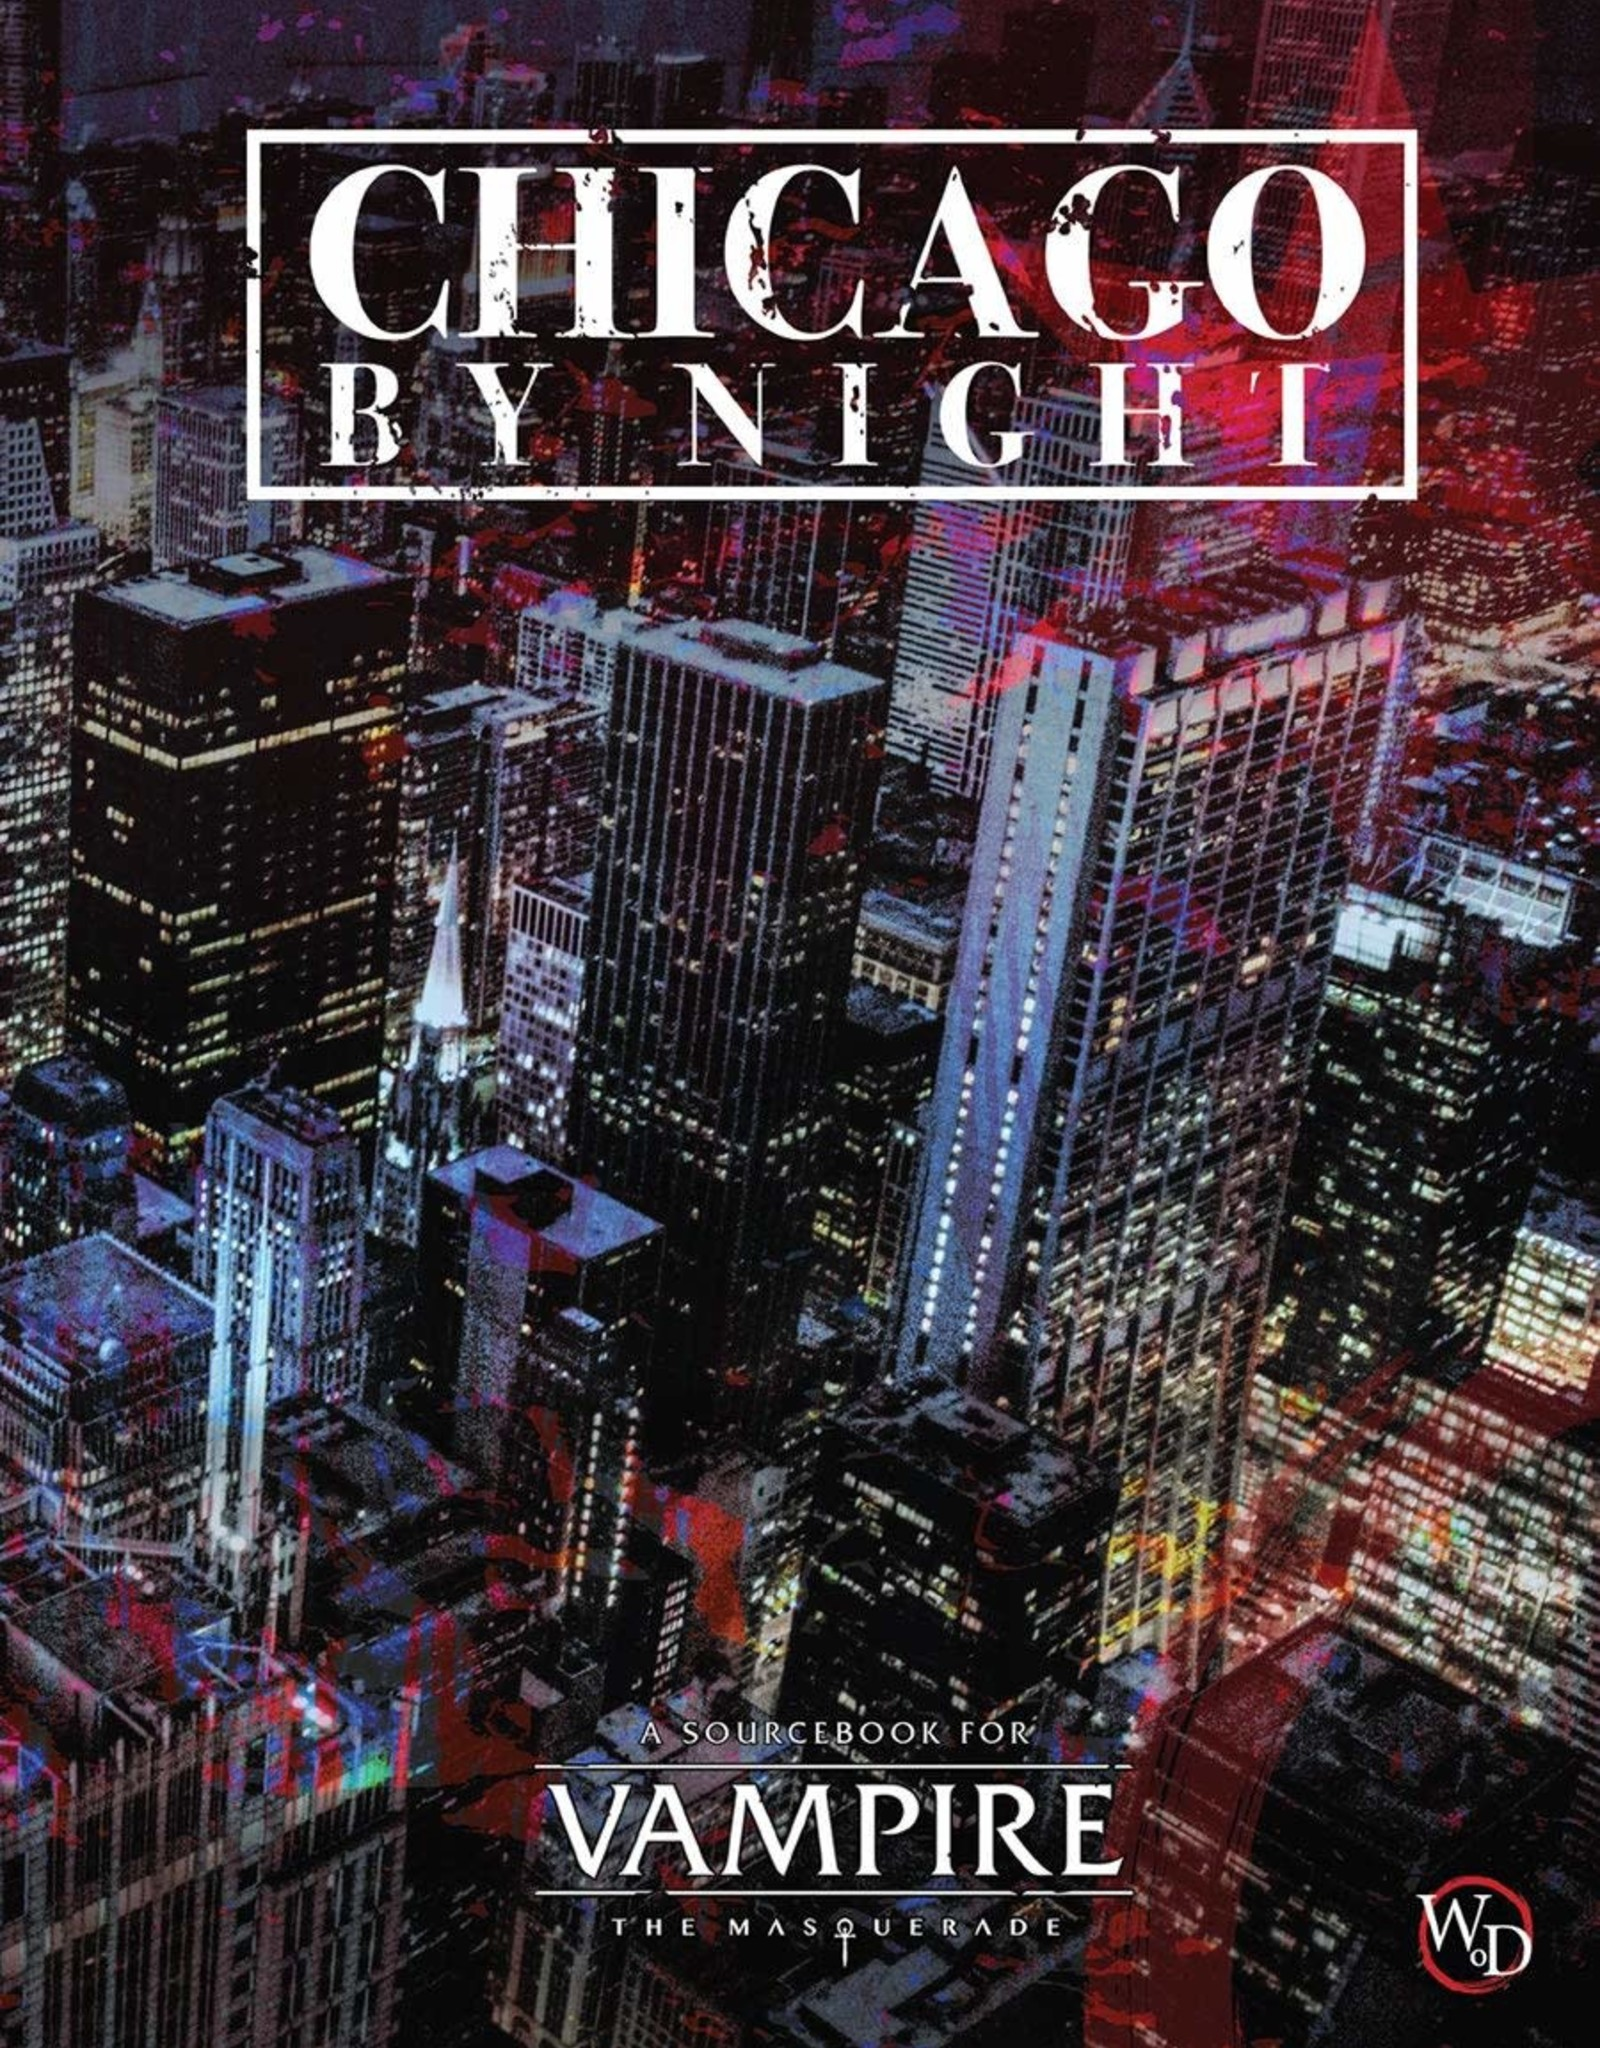 World of Darkness Vampire the Masquerade 5th Chicago by Night